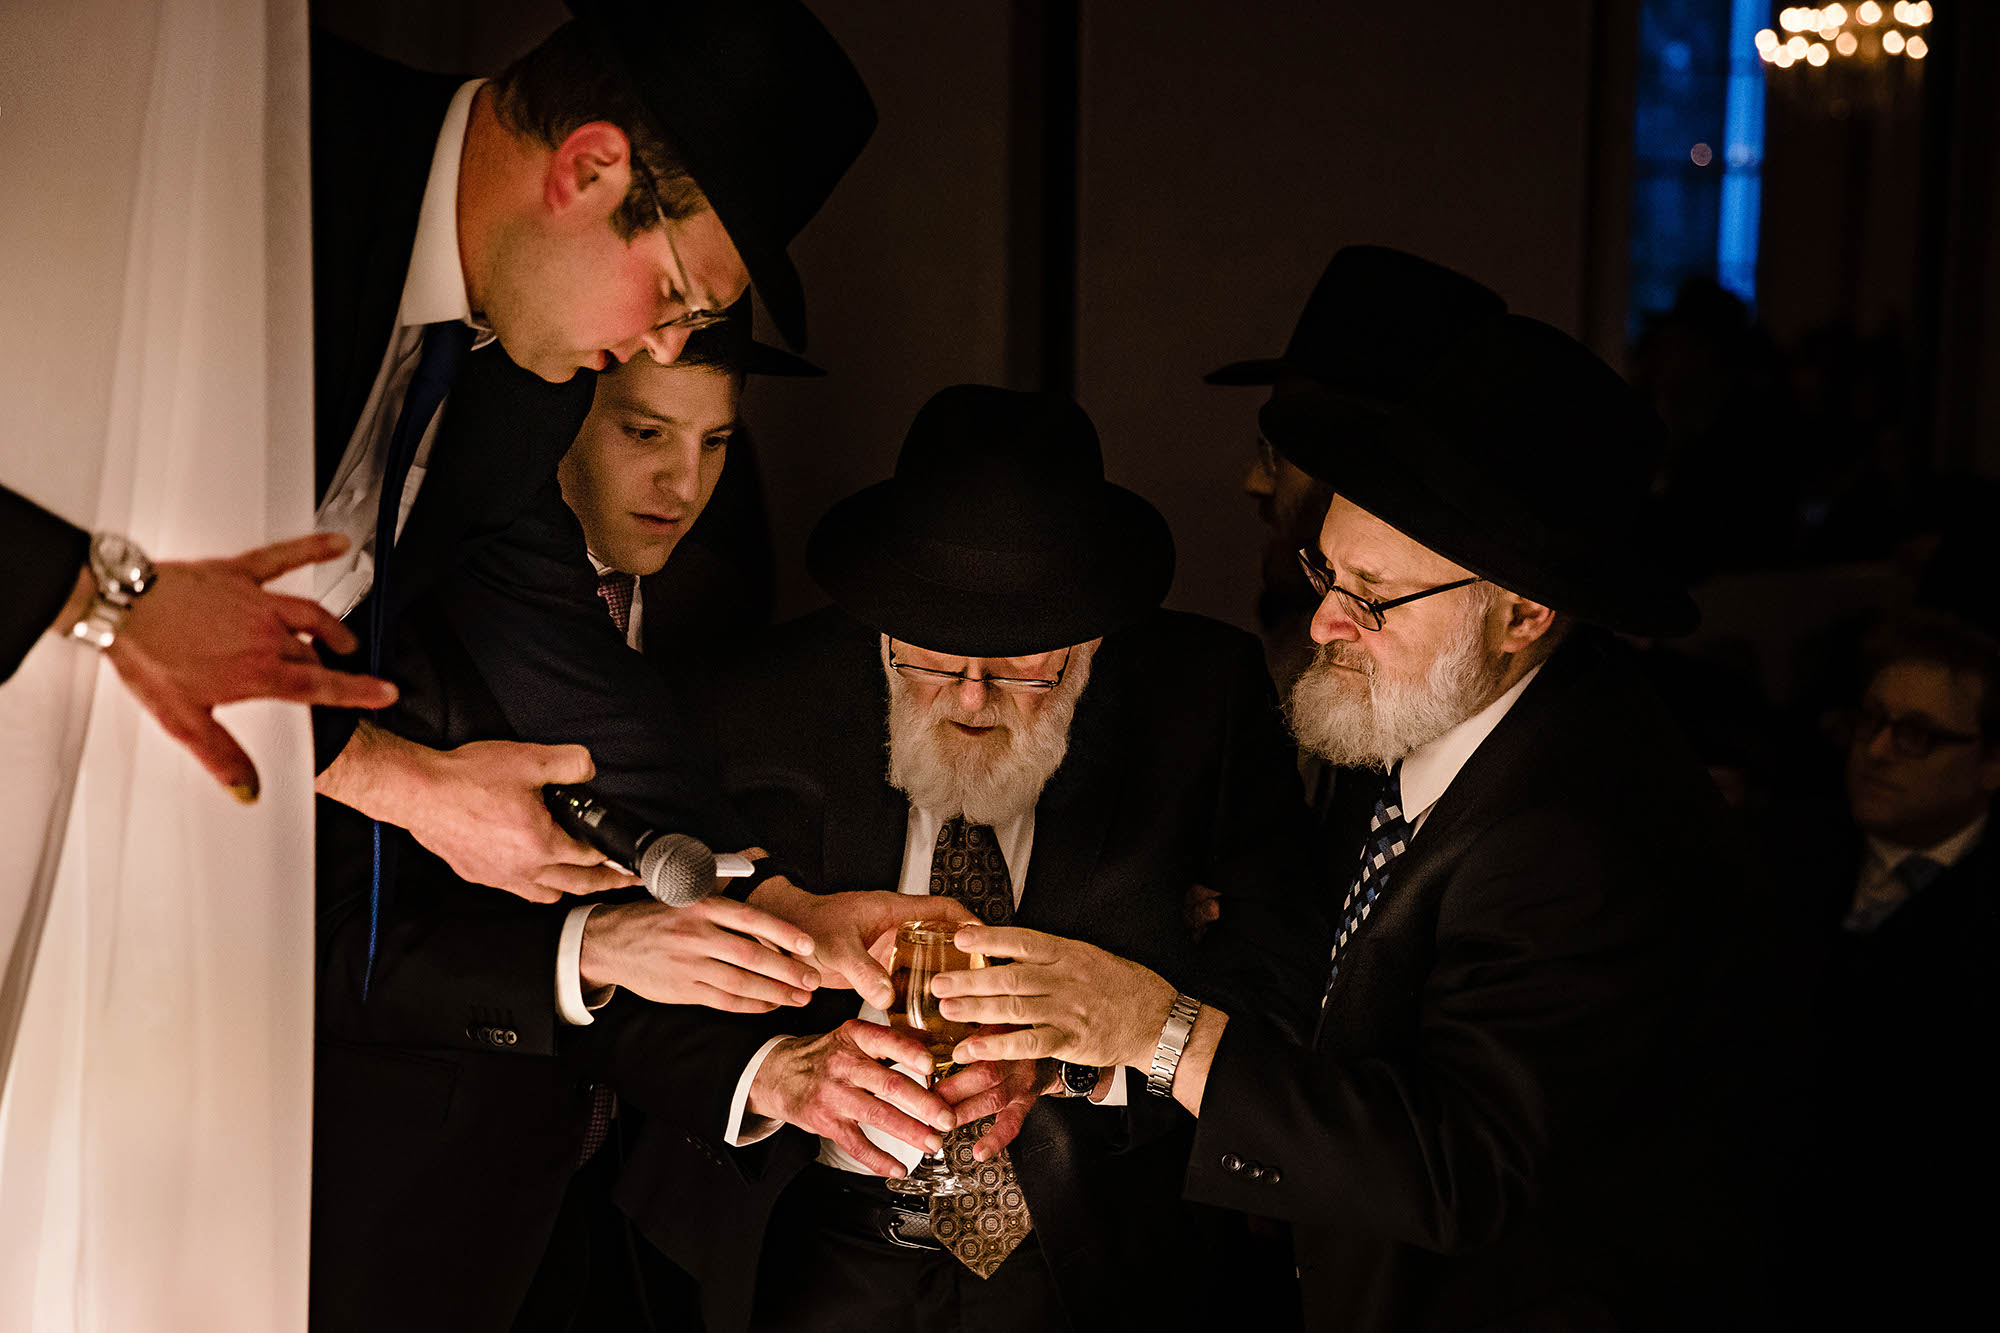 The rabbis bless the wine during the orthodox Jewish wedding ceremony at Landerhaven in Cleveland, Ohio.